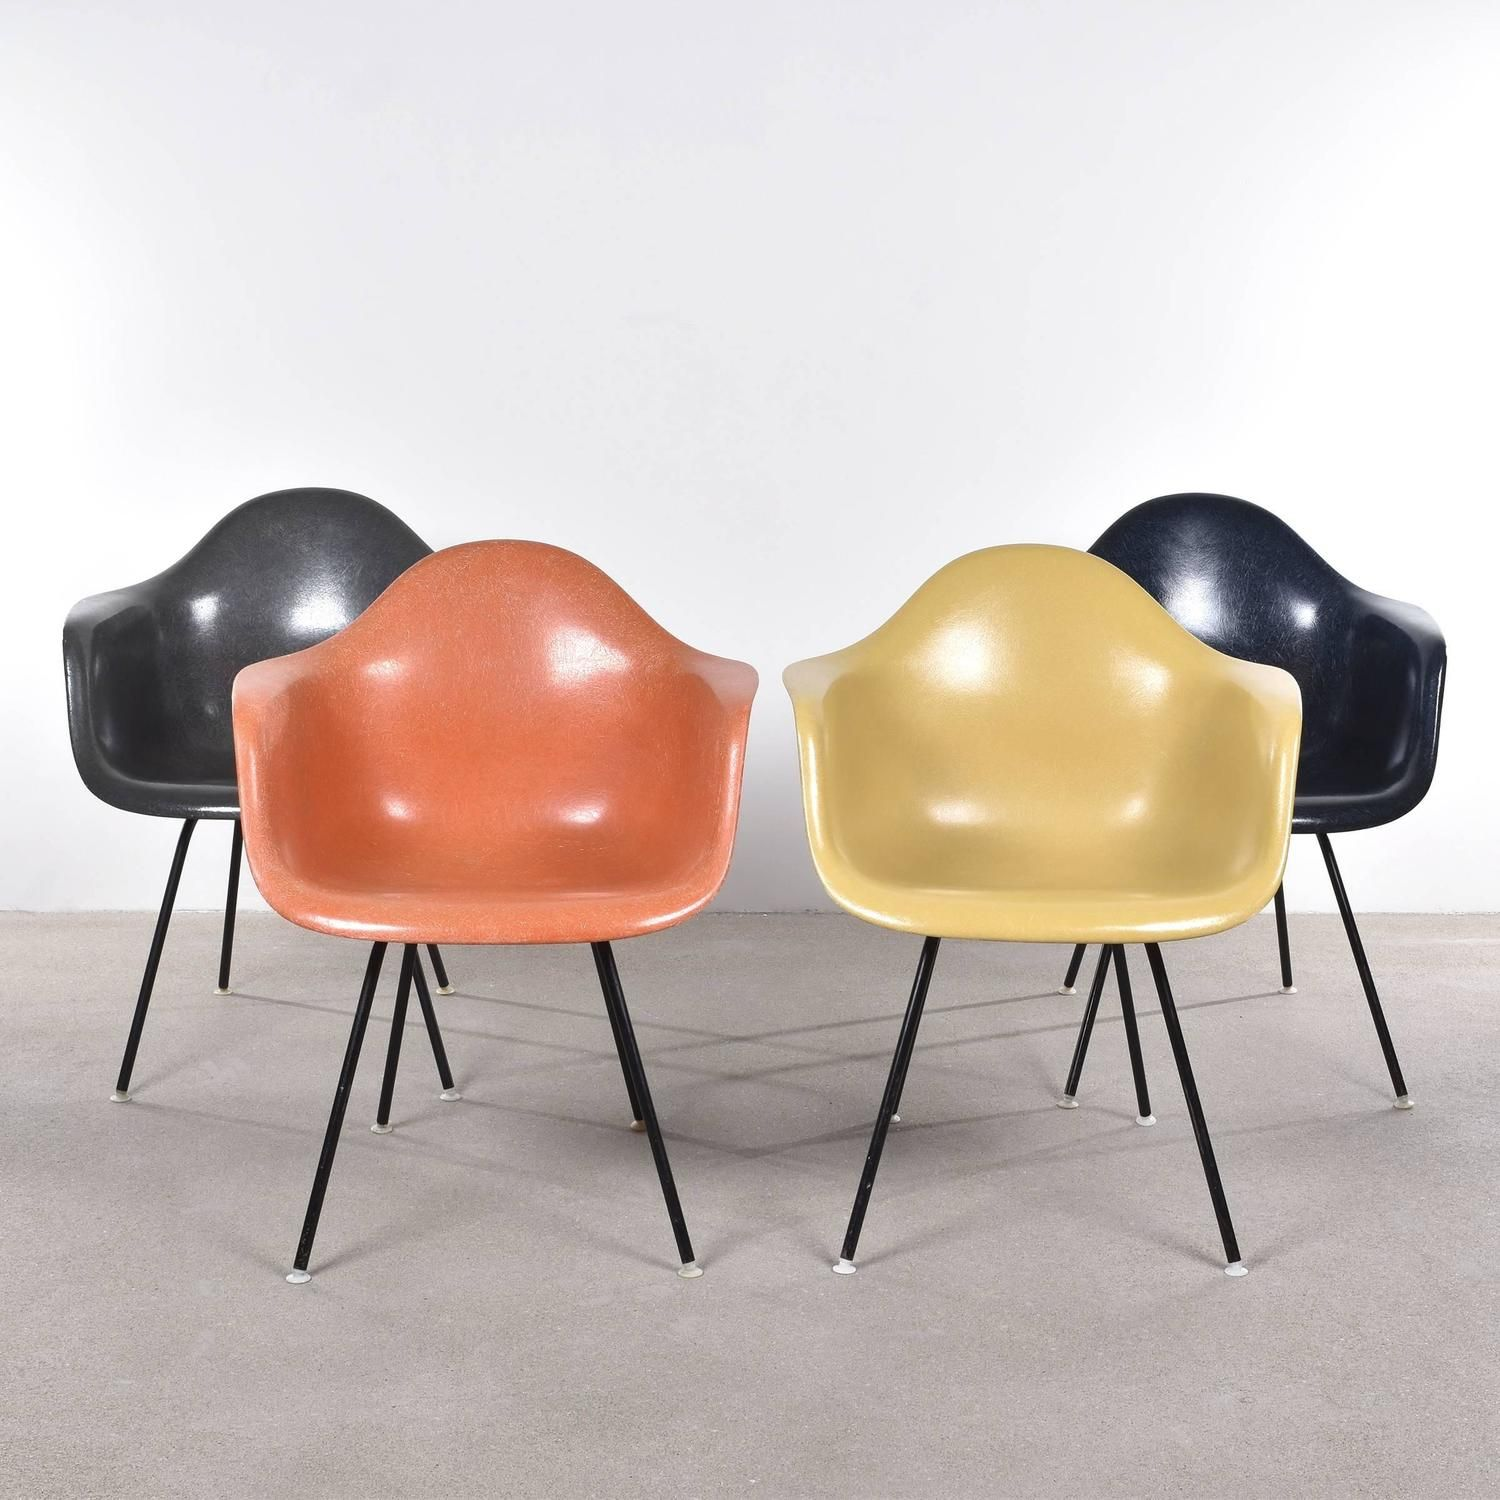 Set of Four Eames DAX Herman Miller, USA Dining Chairs (No